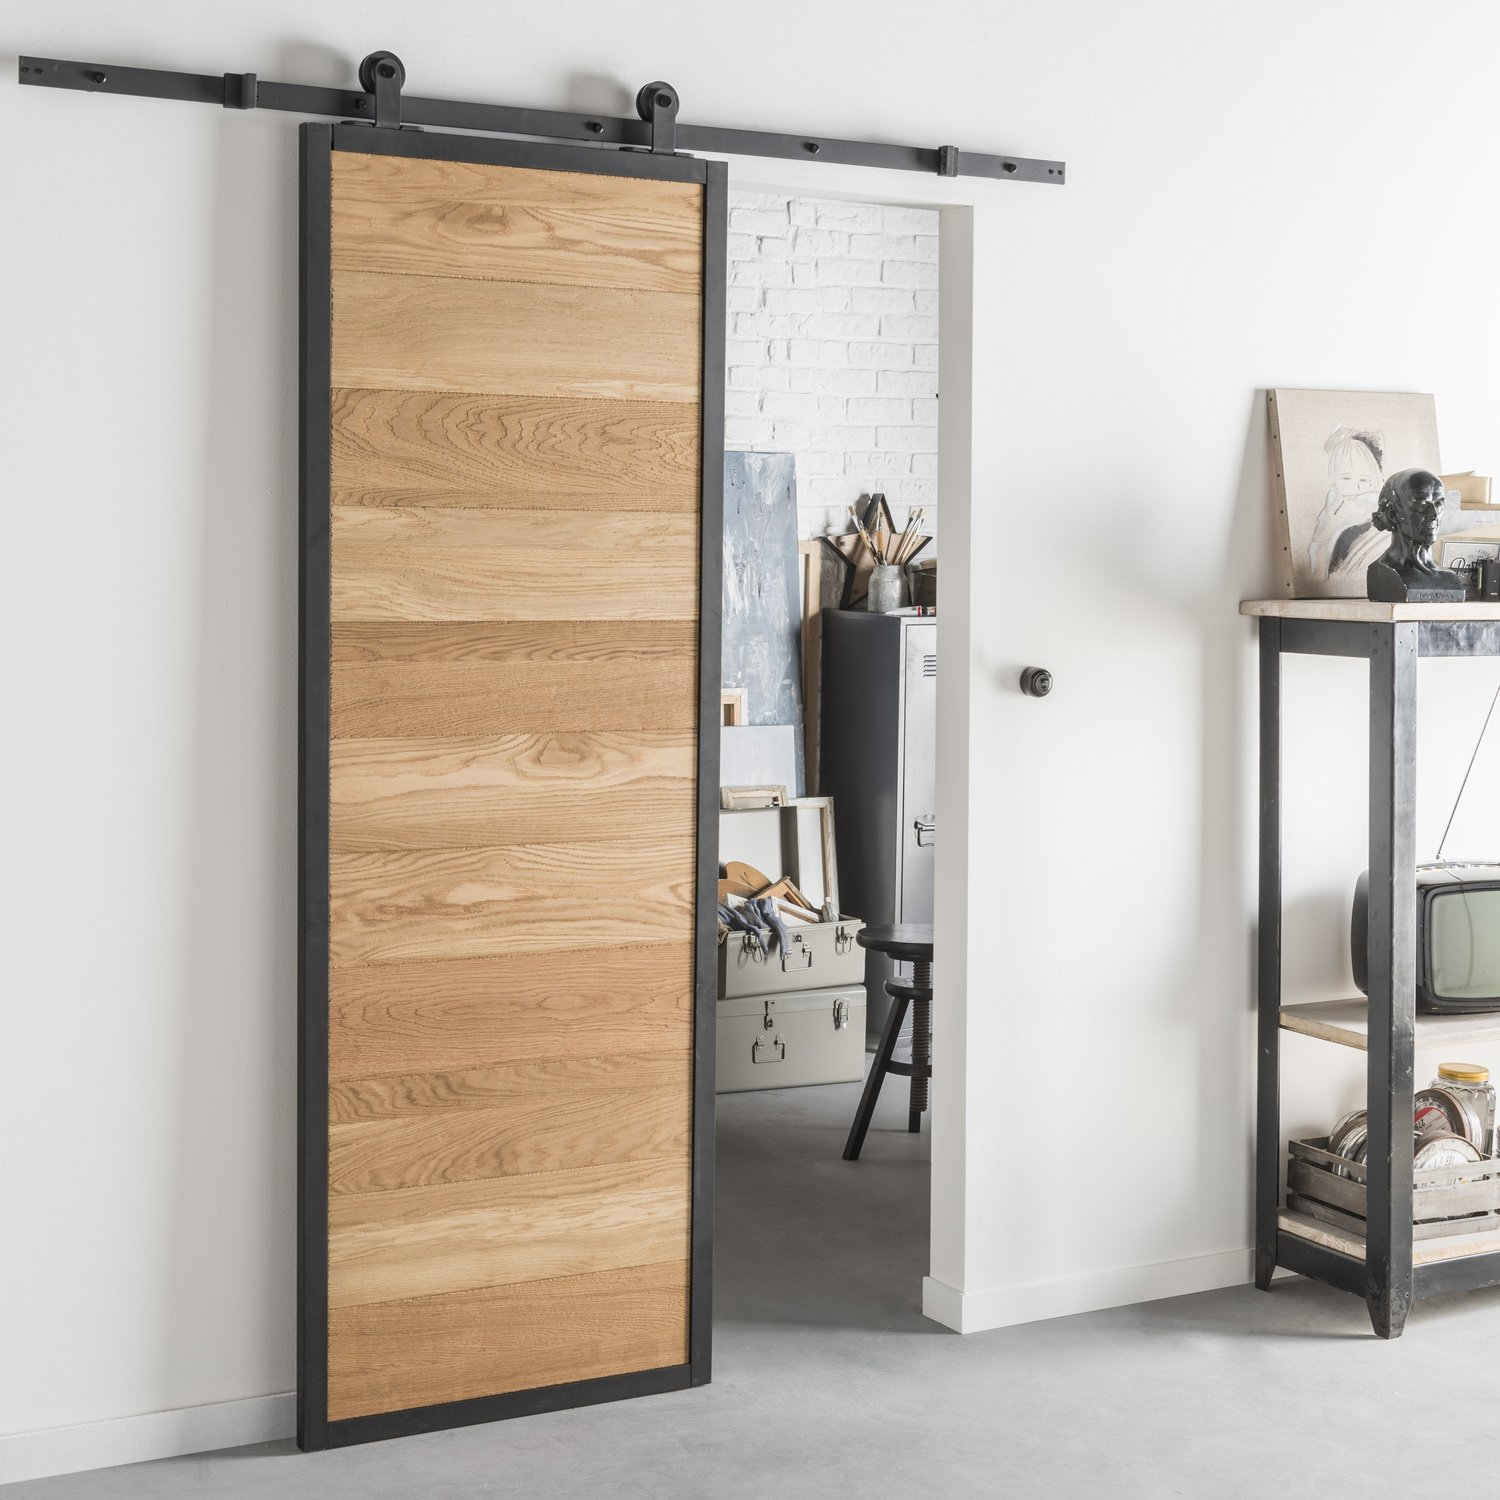 style industriel pour une porte coulissante en bois et alu leroy merlin. Black Bedroom Furniture Sets. Home Design Ideas